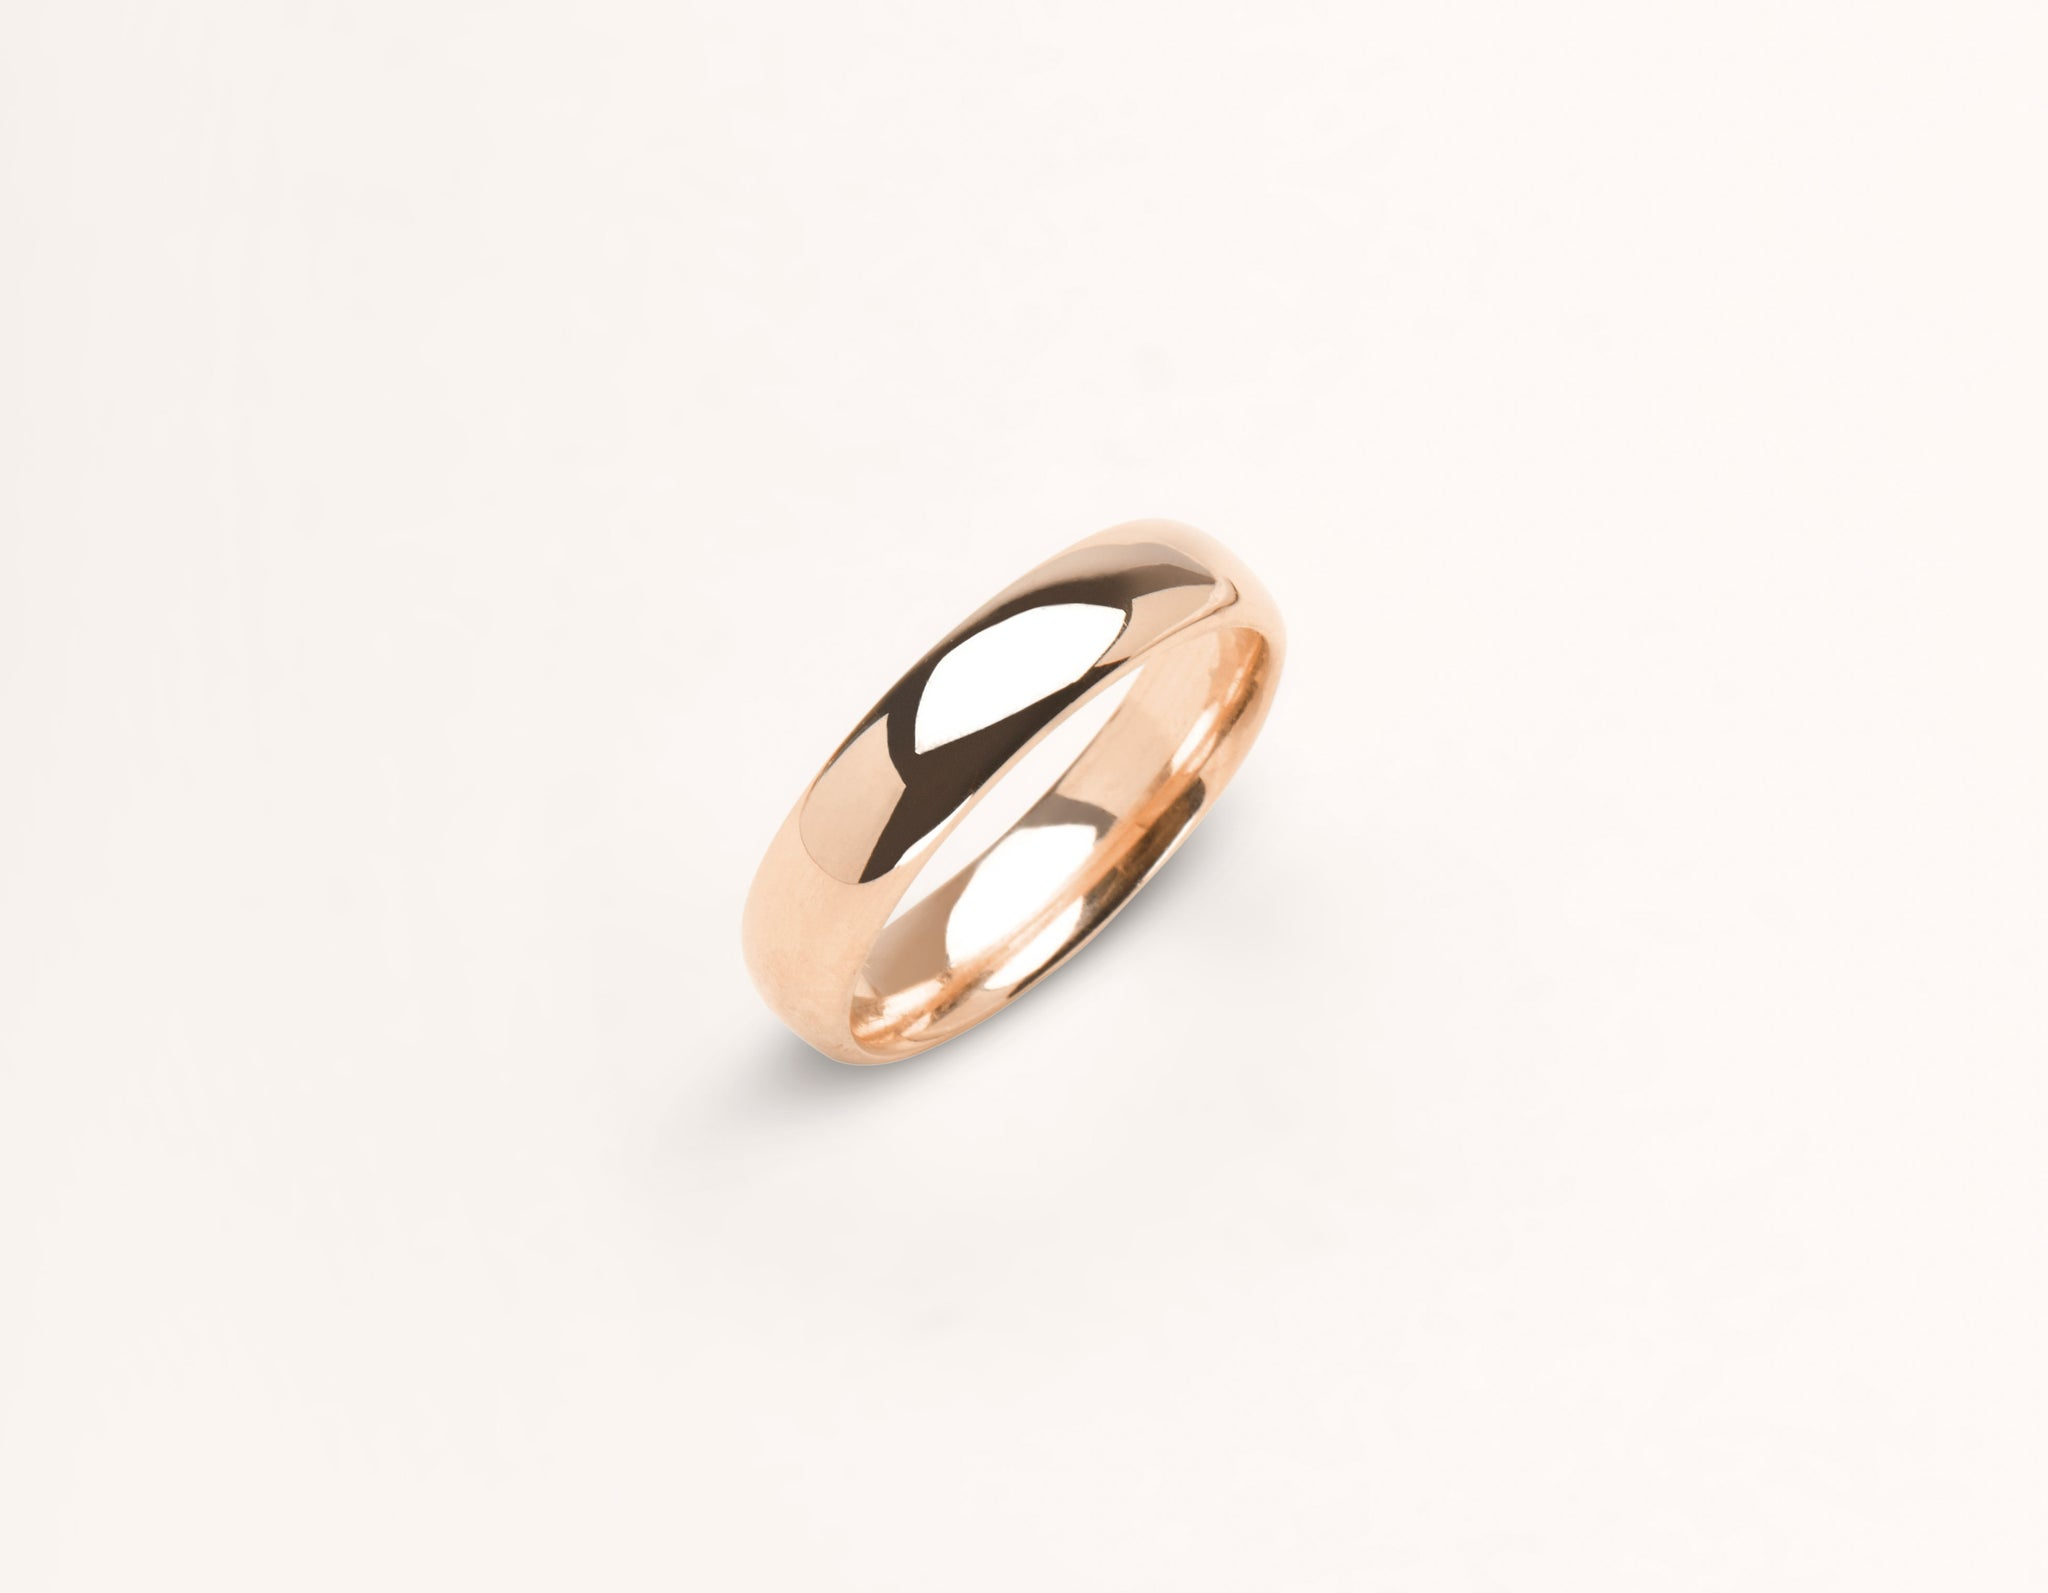 Minimalist 18k solid rose gold 4.5 mm Round Wedding Band for men and women Vrai and Oro